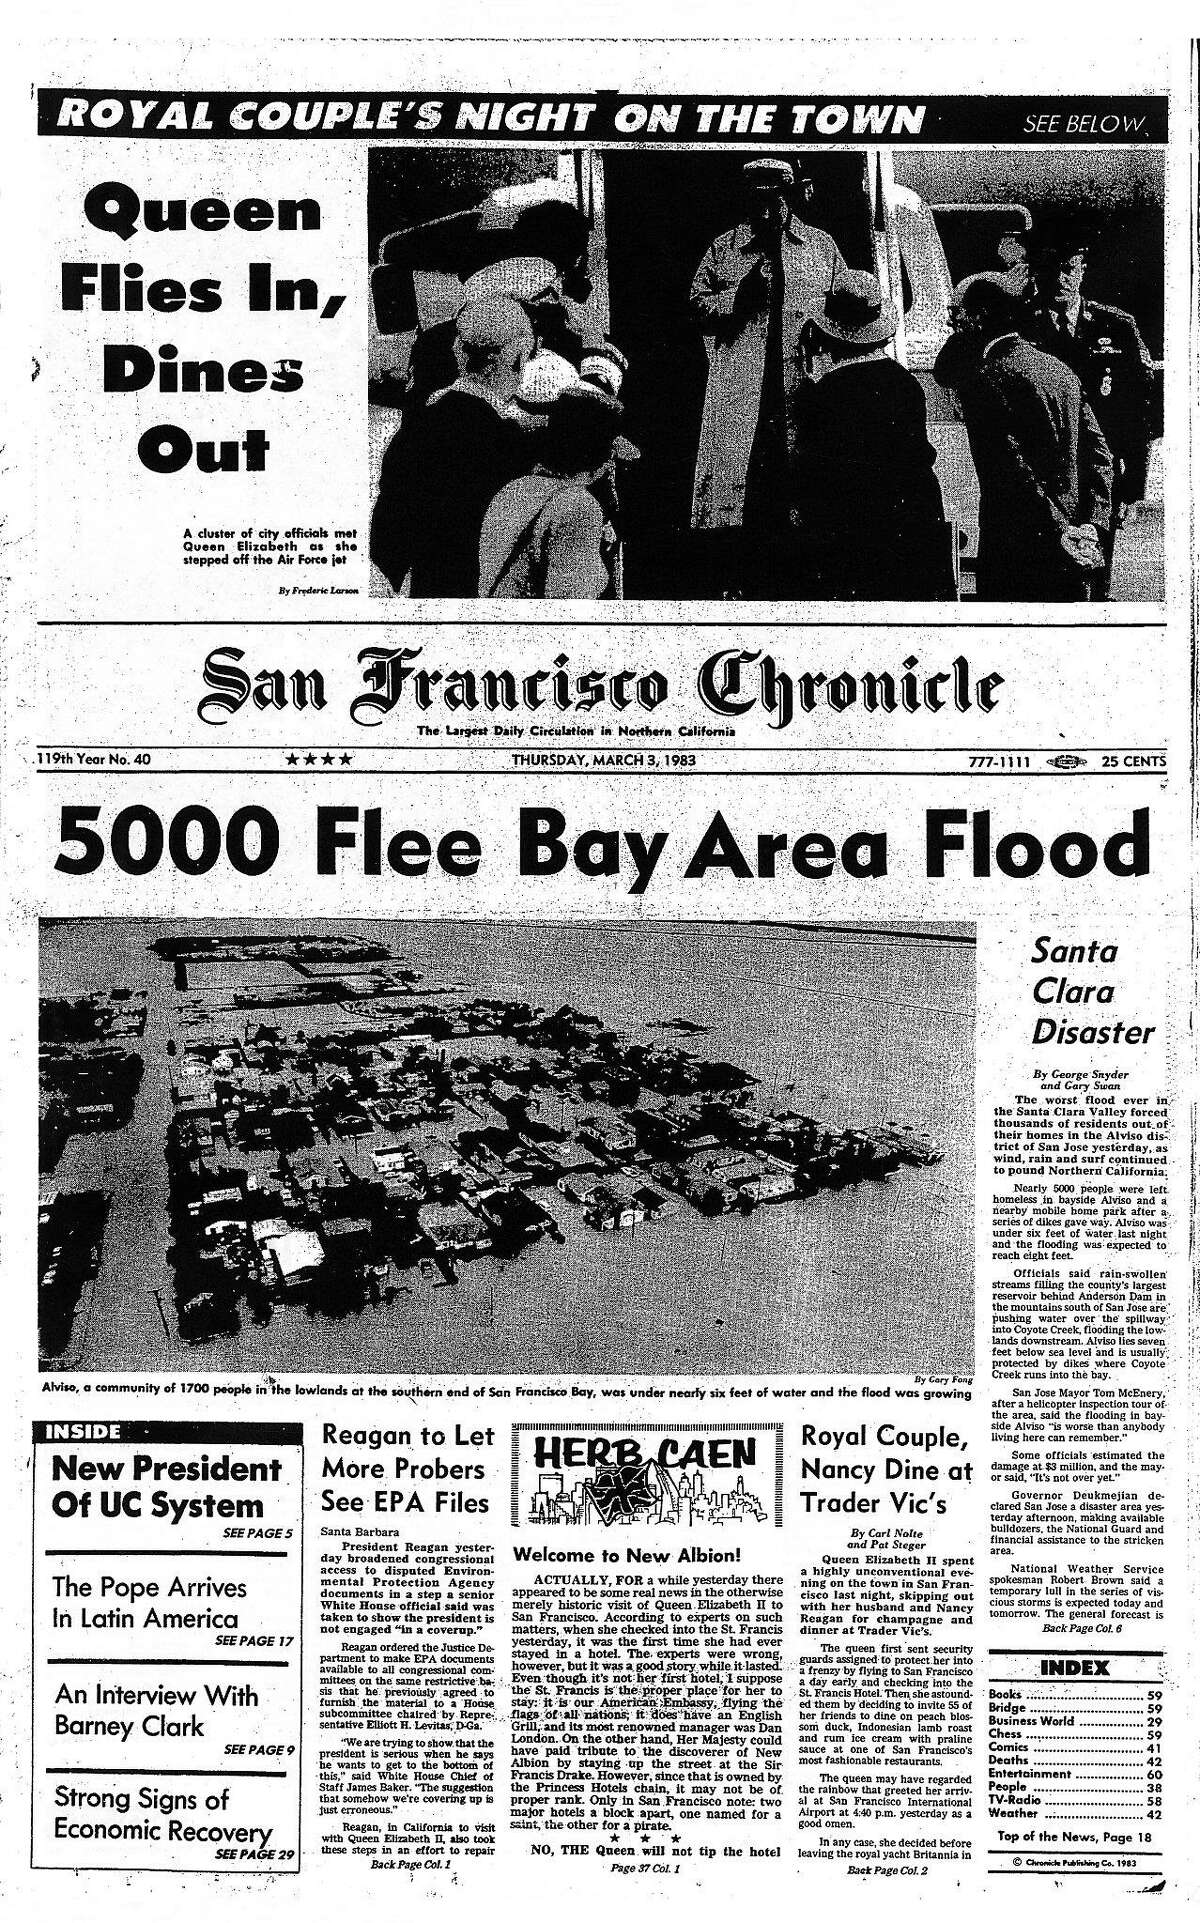 The Chronicle front page on March 3, 1983, reported on widespread flooding in the Bay Area.